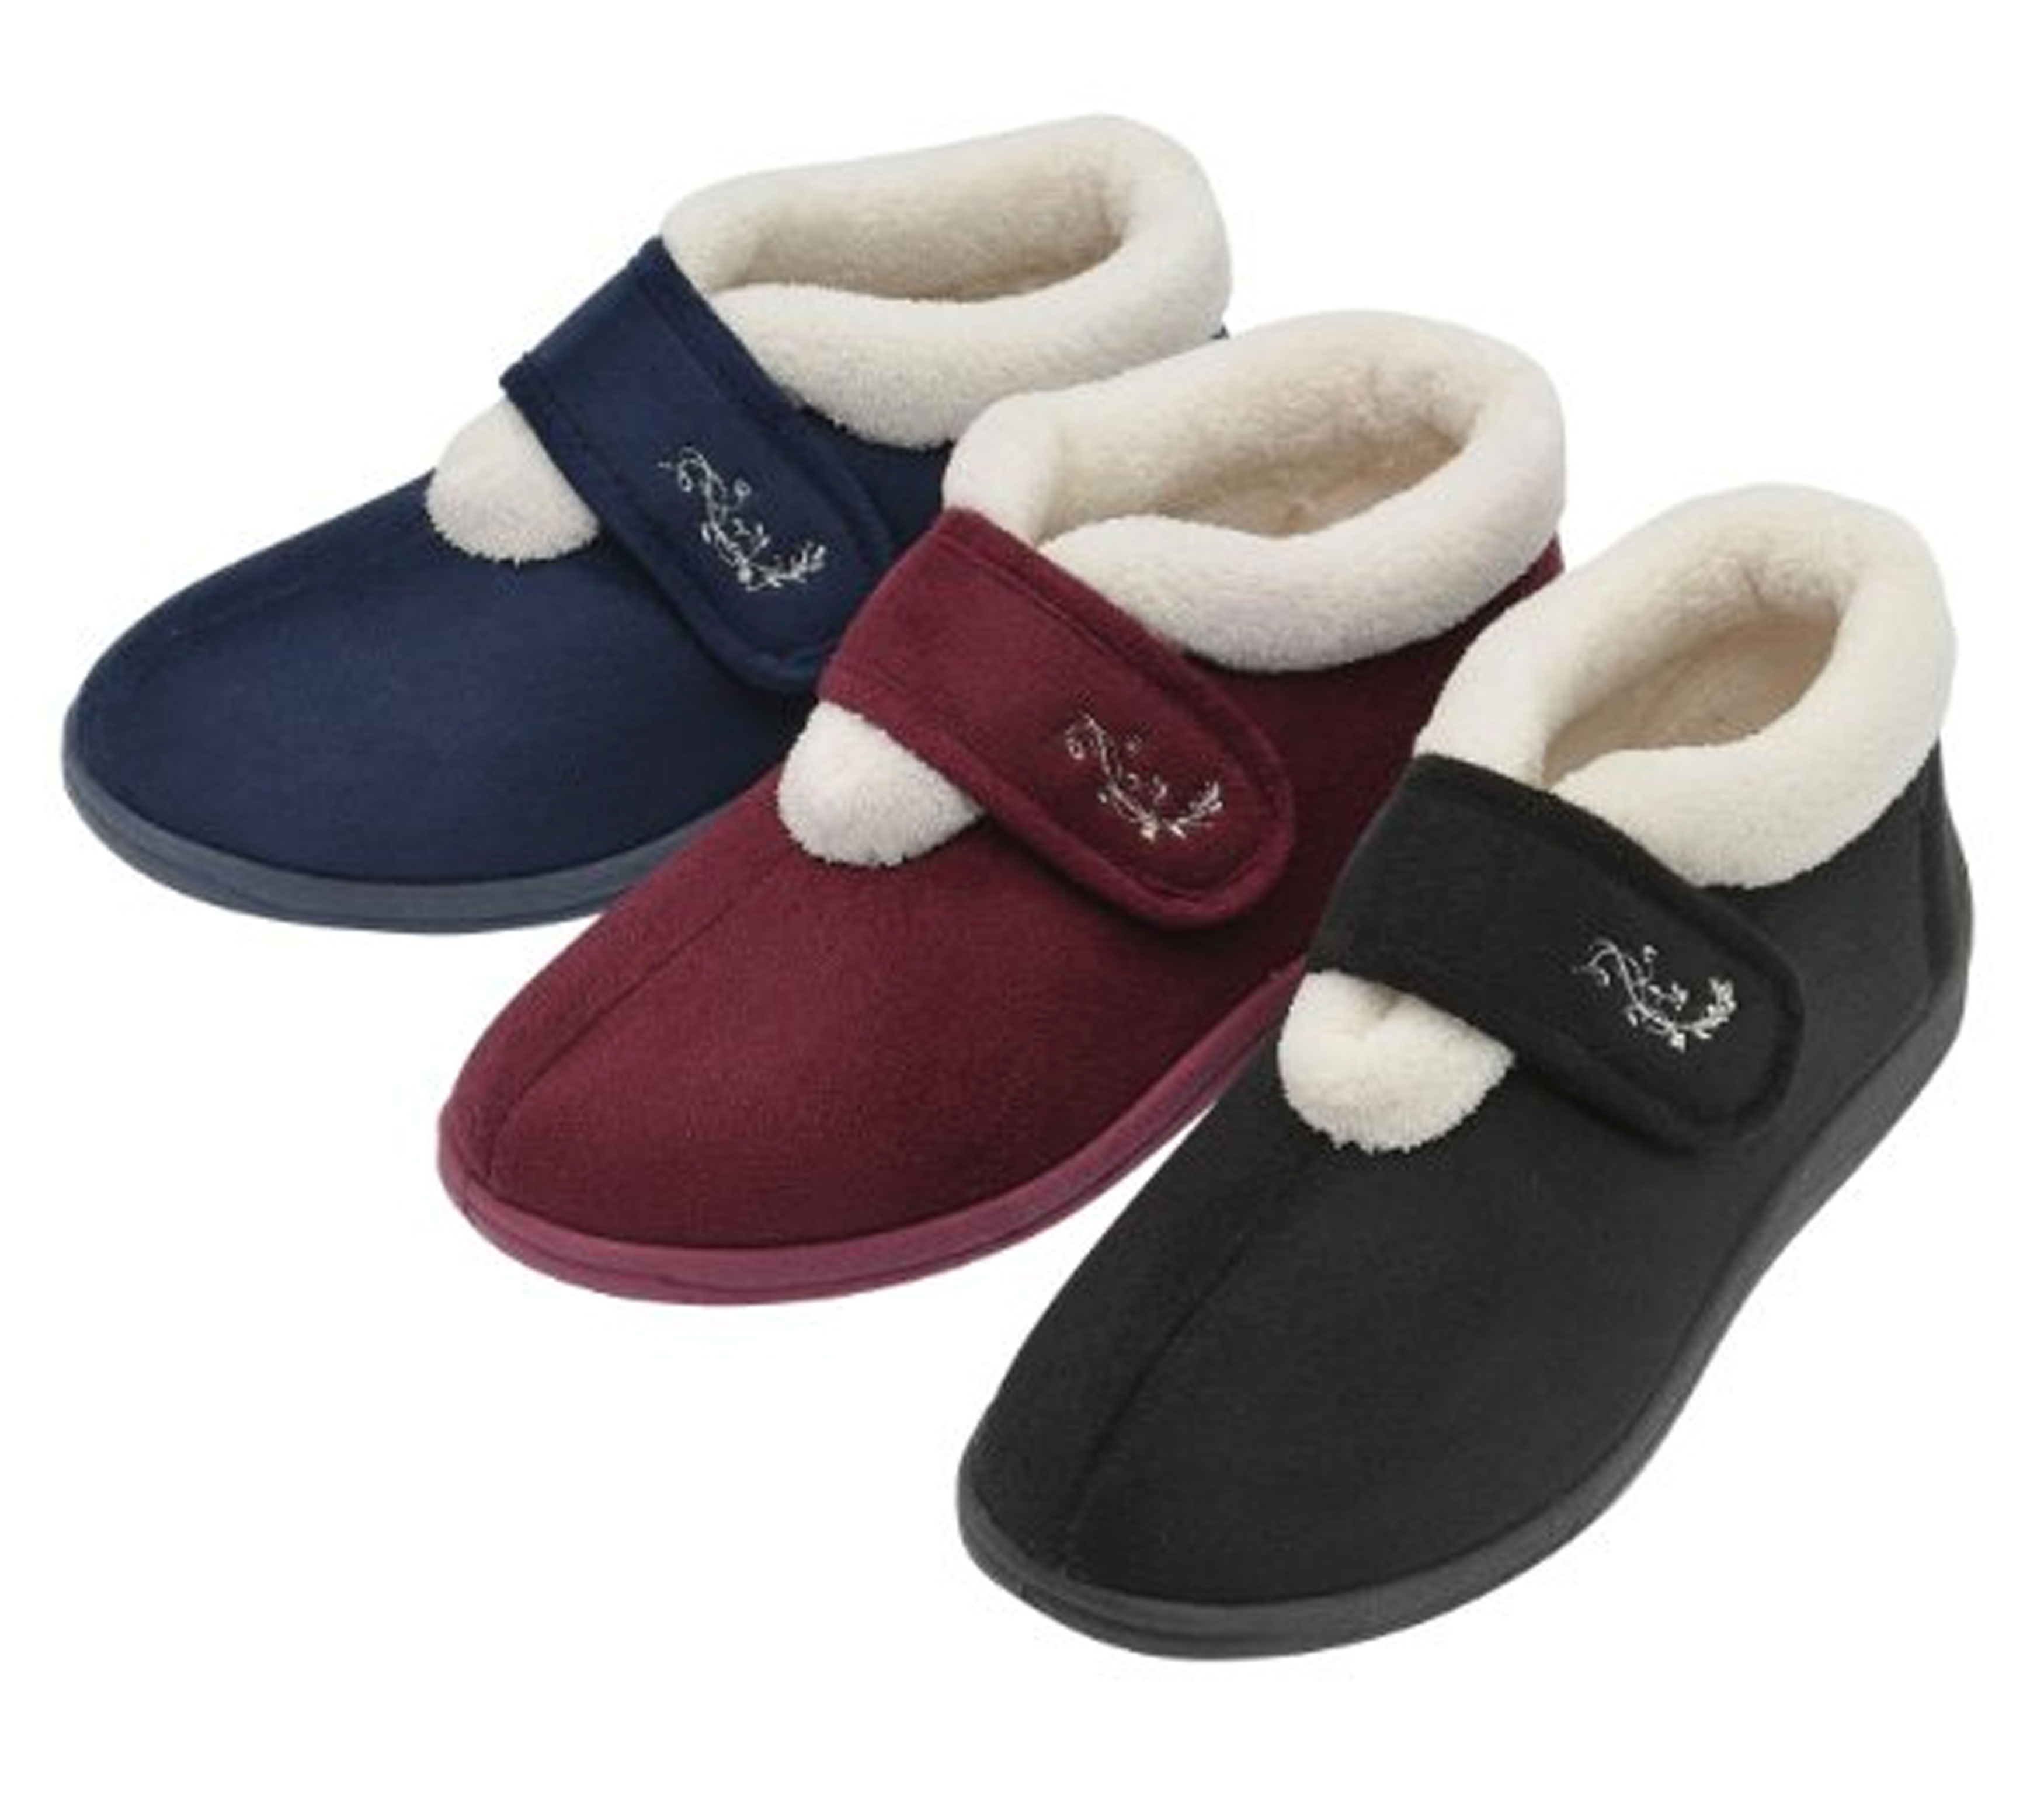 Best Shoes For Ankle Support Uk